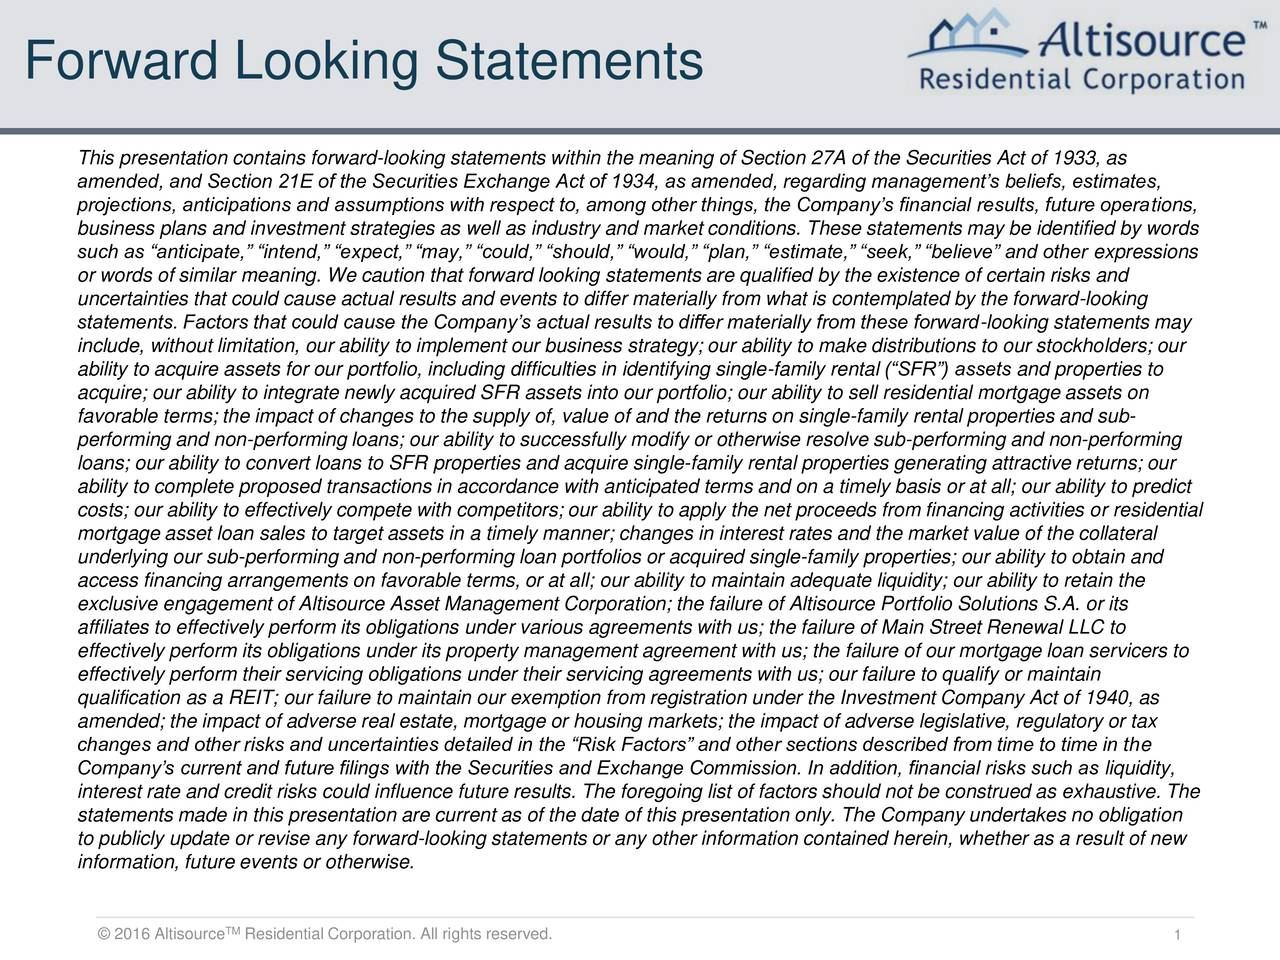 This presentation contains forward-looking statements within the meaning of Section 27A of the Securities Act of 1933, as amended, and Section 21E of the Securities Exchange Act of 1934, as amended, regarding managements beliefs, estimates, projections, anticipations and assumptions with respect to, among other things, the Companys financial results, future operations, business plans and investment strategies as well as industry and market conditions. These statements may be identified by words such as anticipate, intend, expect, may, could, should, would, plan, estimate, seek, believe and other expressions or words of similar meaning. We caution that forward looking statements are qualified by the existence of certain risks and uncertainties that could cause actual results and events to differ materially from what is contemplated by the forward-looking statements. Factors that could cause the Companys actual results to differ materially from these forward-looking statements may include, without limitation, our ability to implement our business strategy; our ability to make distributions to our stockholders; our ability to acquire assets for our portfolio, including difficulties in identifying single-family rental (SFR) assets and properties to acquire; our ability to integrate newly acquired SFR assets into our portfolio; our ability to sell residential mortgage assets on favorable terms; the impact of changes to the supply of, value of and the returns on single-family rental properties and sub- performing and non-performing loans; our ability to successfully modify or otherwise resolve sub-performing and non-performing loans; our ability to convert loans to SFR properties and acquire single-family rental properties generating attractive returns; our ability to complete proposed transactions in accordance with anticipated terms and on a timely basis or at all; our ability to predict costs; our ability to effectively compete with competitors; our ability to apply th